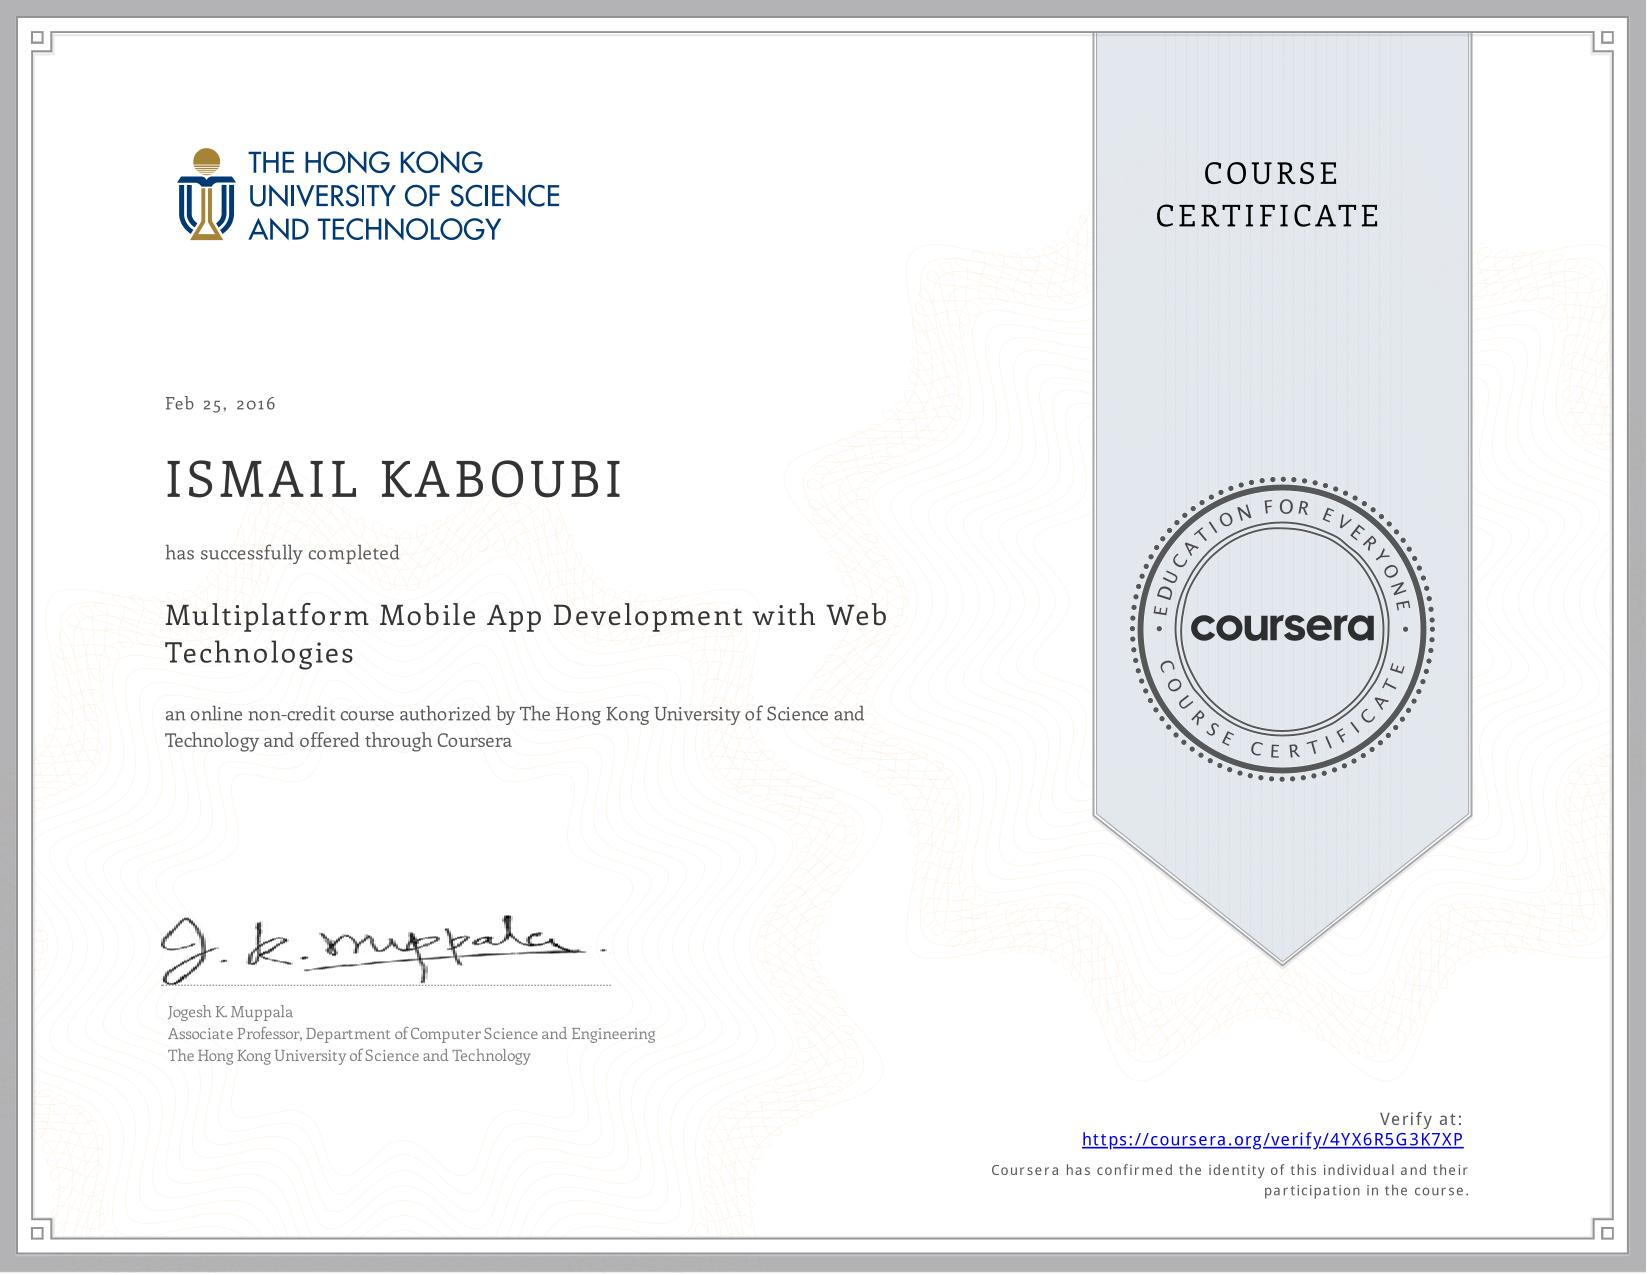 View certificate for ISMAIL KABOUBI, Multiplatform Mobile App Development with Web Technologies, an online non-credit course authorized by  & The Hong Kong University of Science and Technology and offered through Coursera